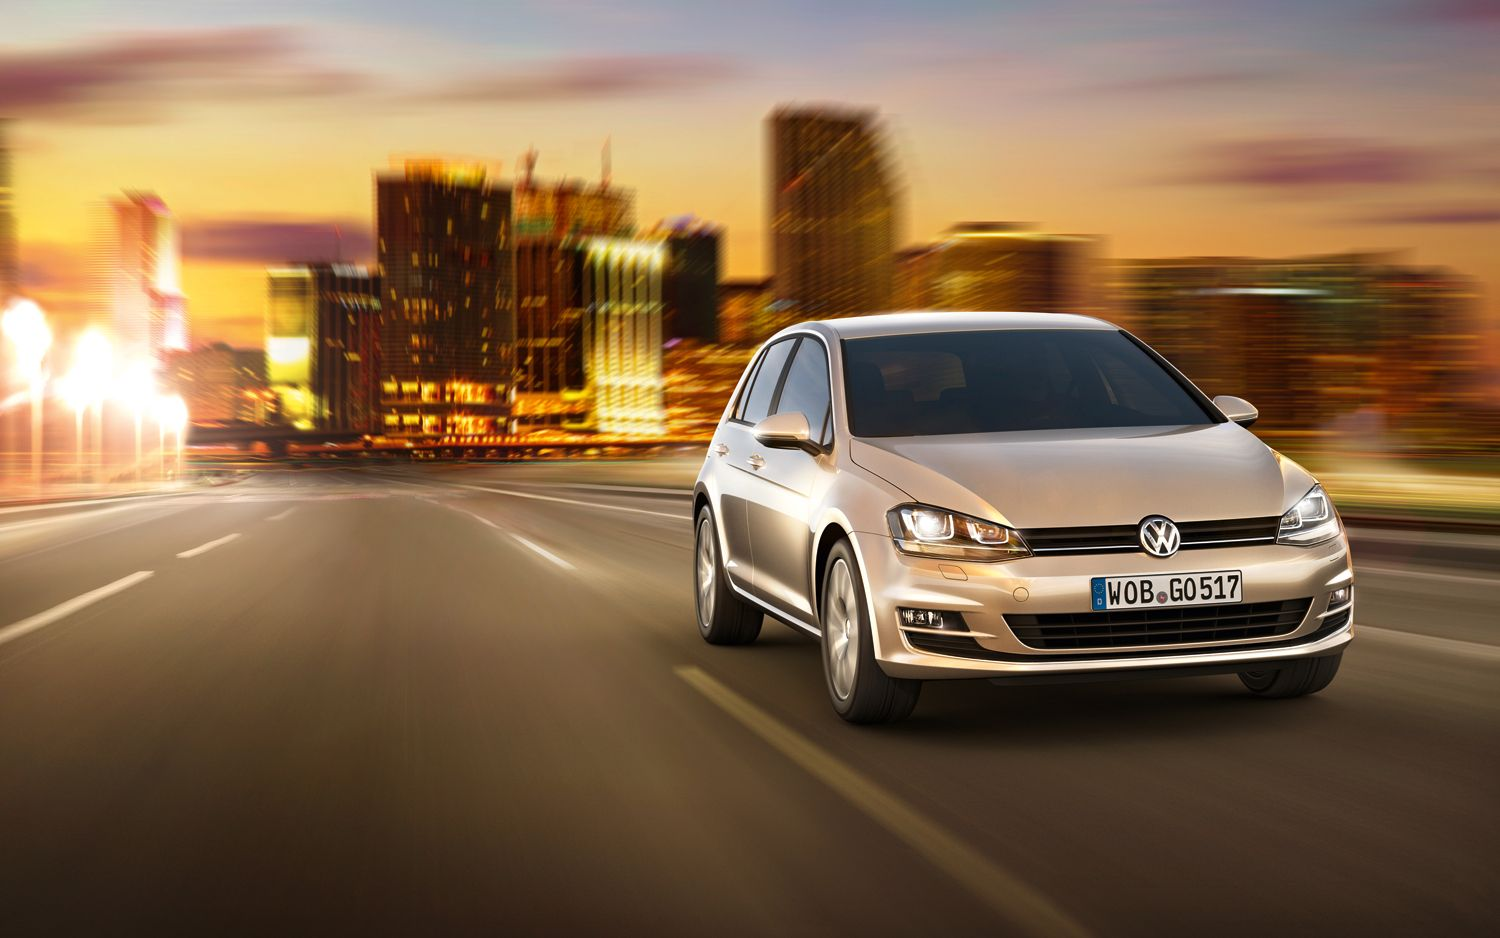 2014 Volkswagen Golf Front End In Motion1